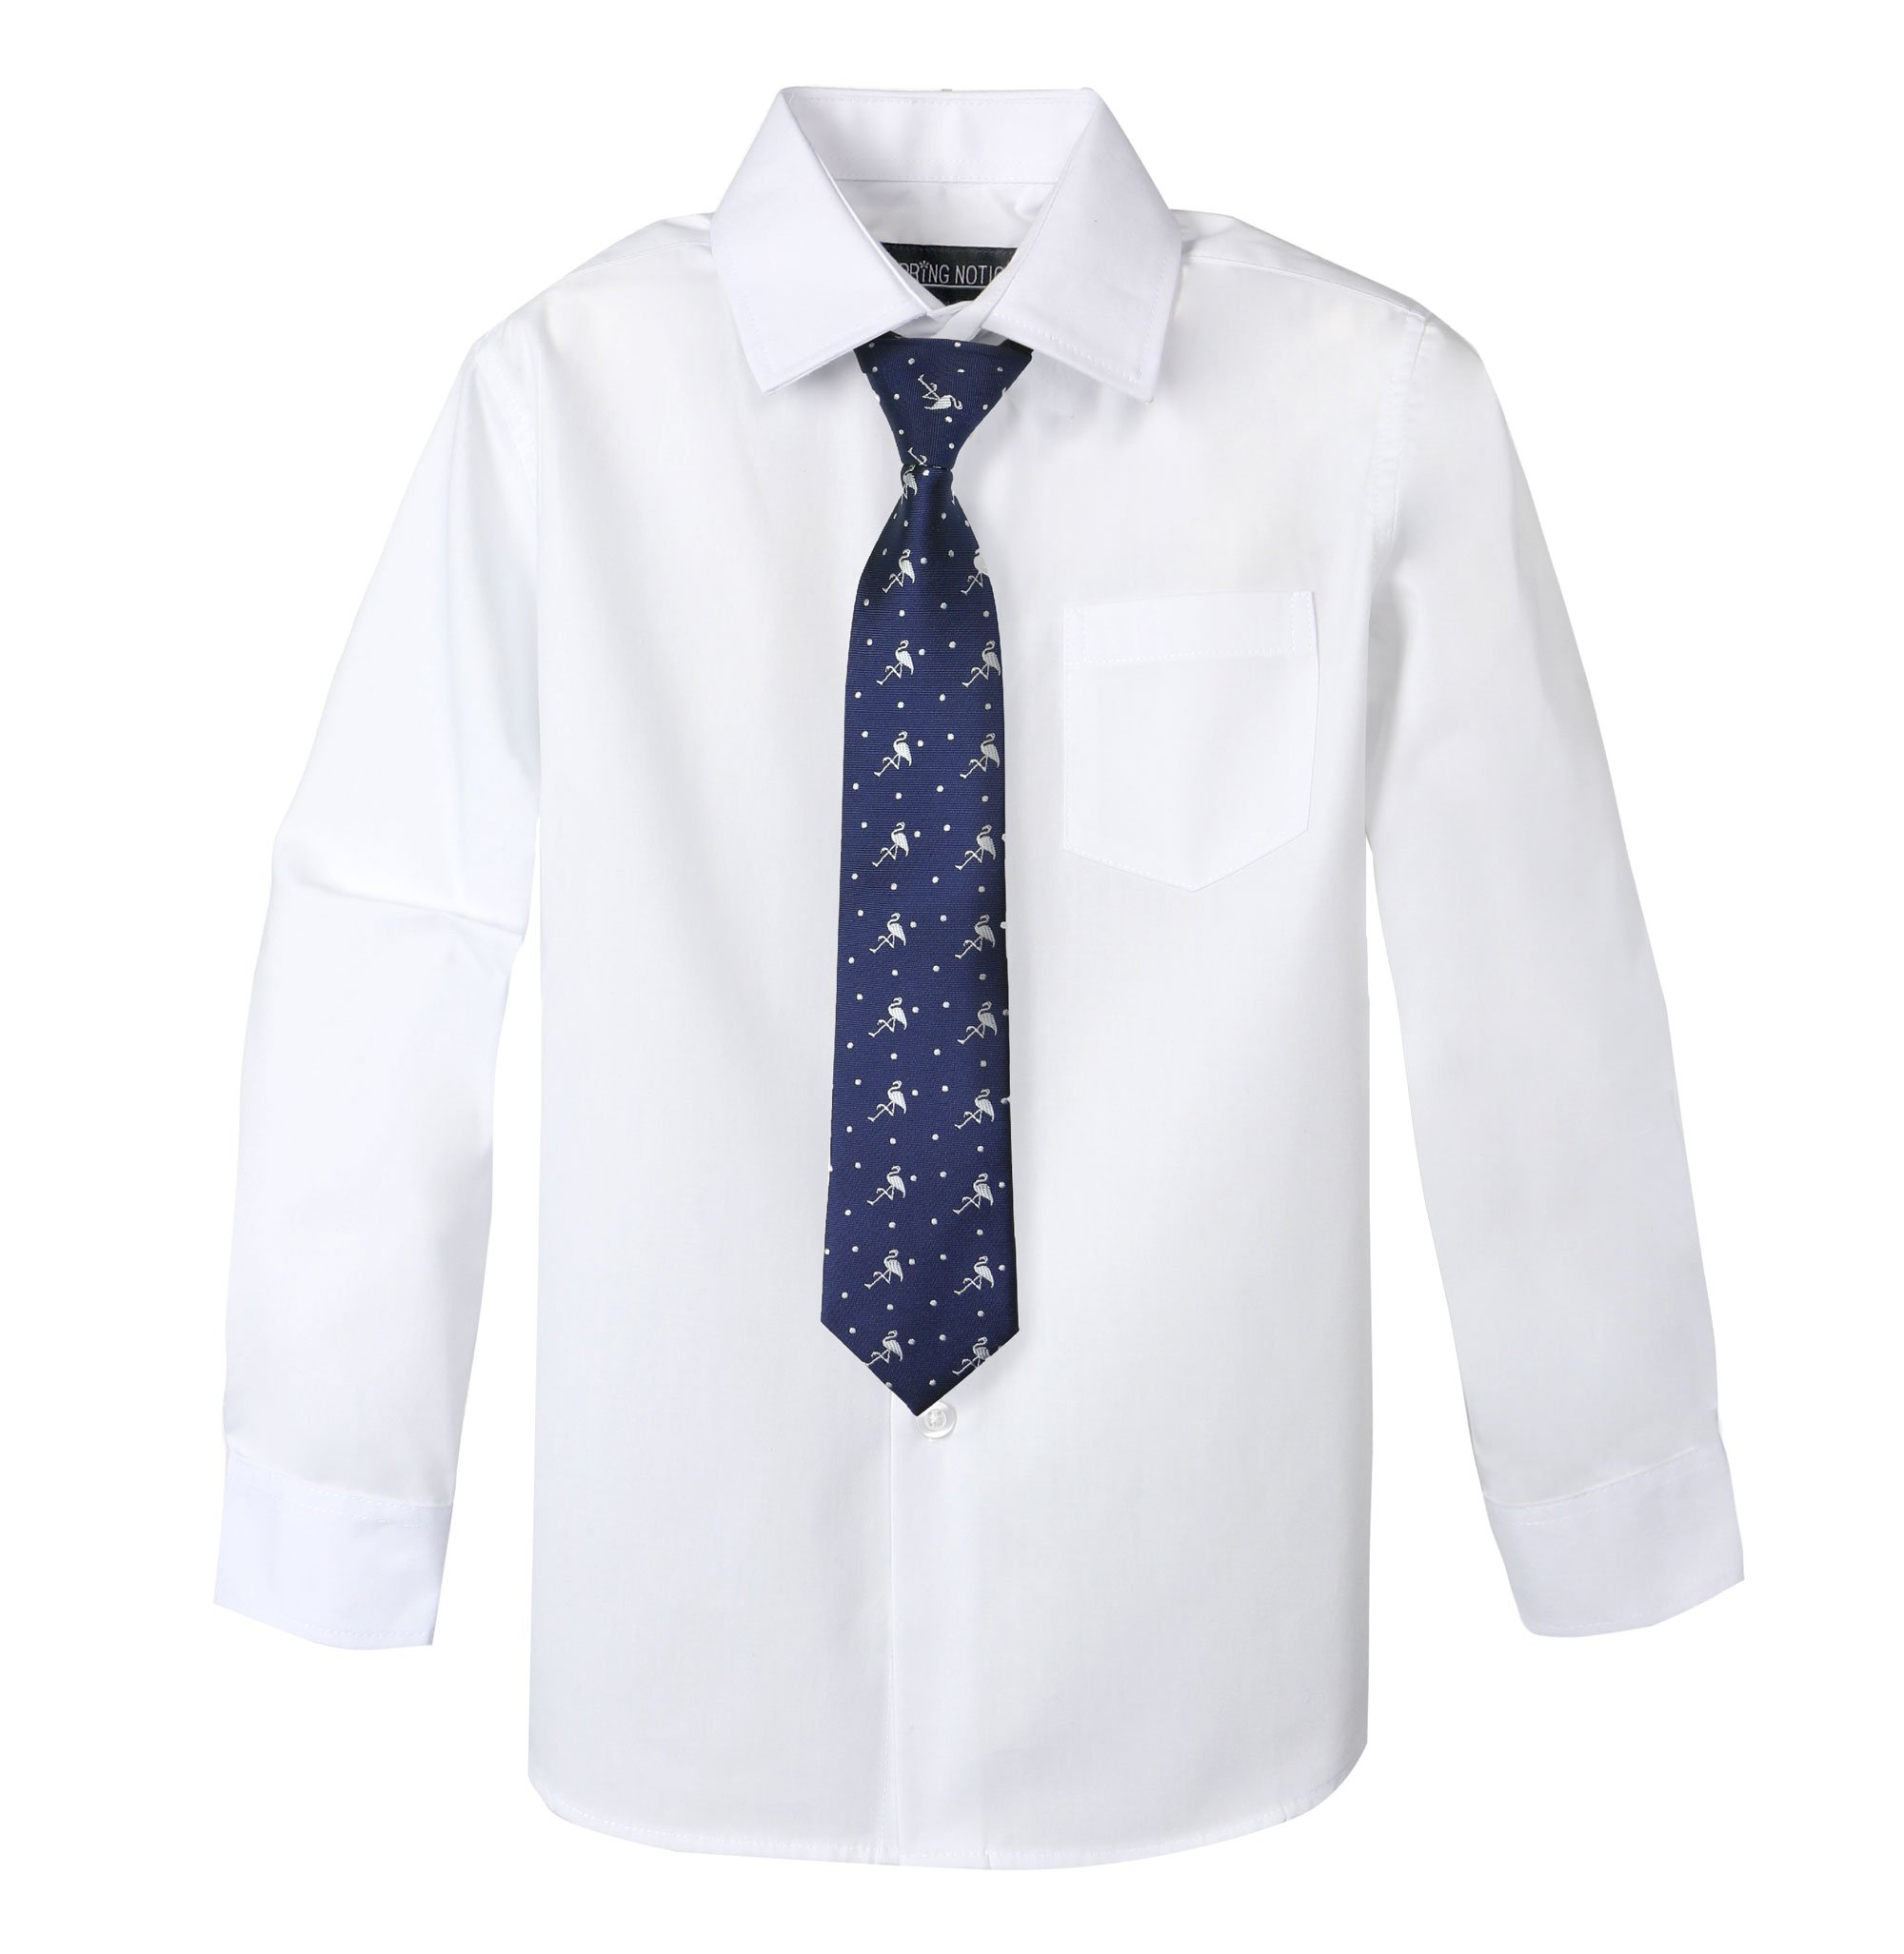 2343fac684c Galleon - Spring Notion Big Boys  Cotton Blend Dress Shirt And Tie Set 5  White